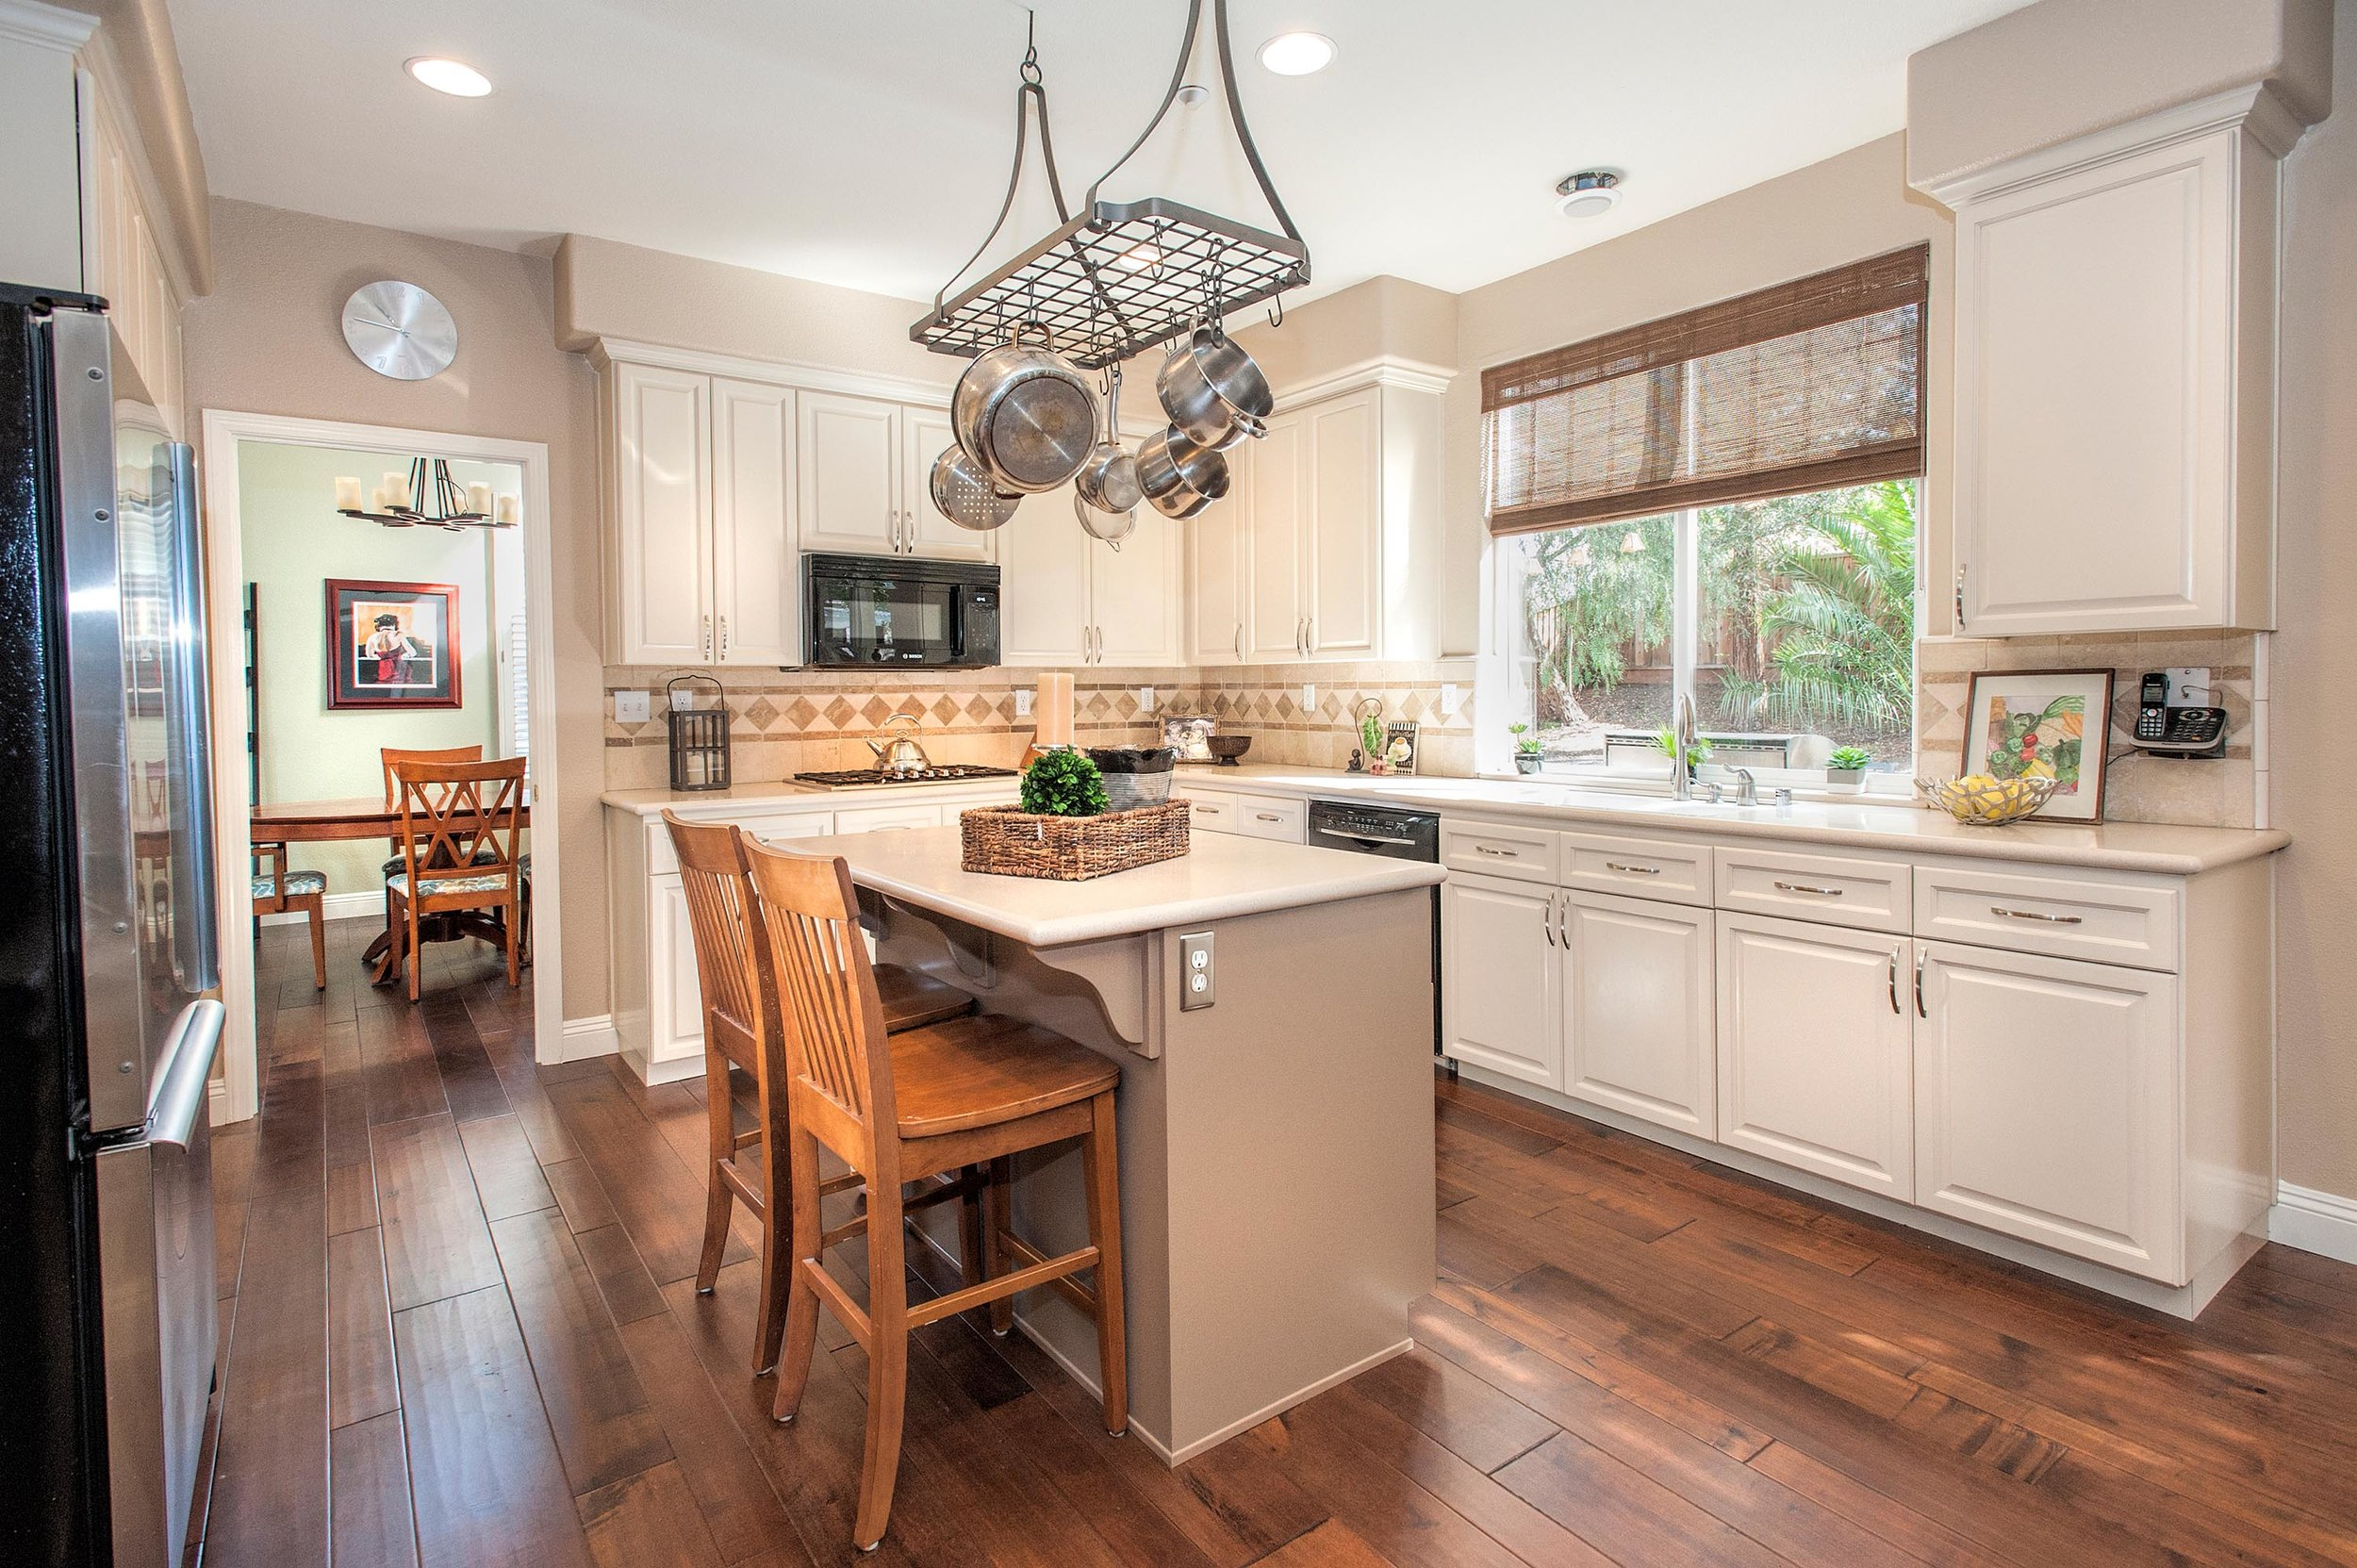 Vintage look kitchen with white cabinets and breakfast table